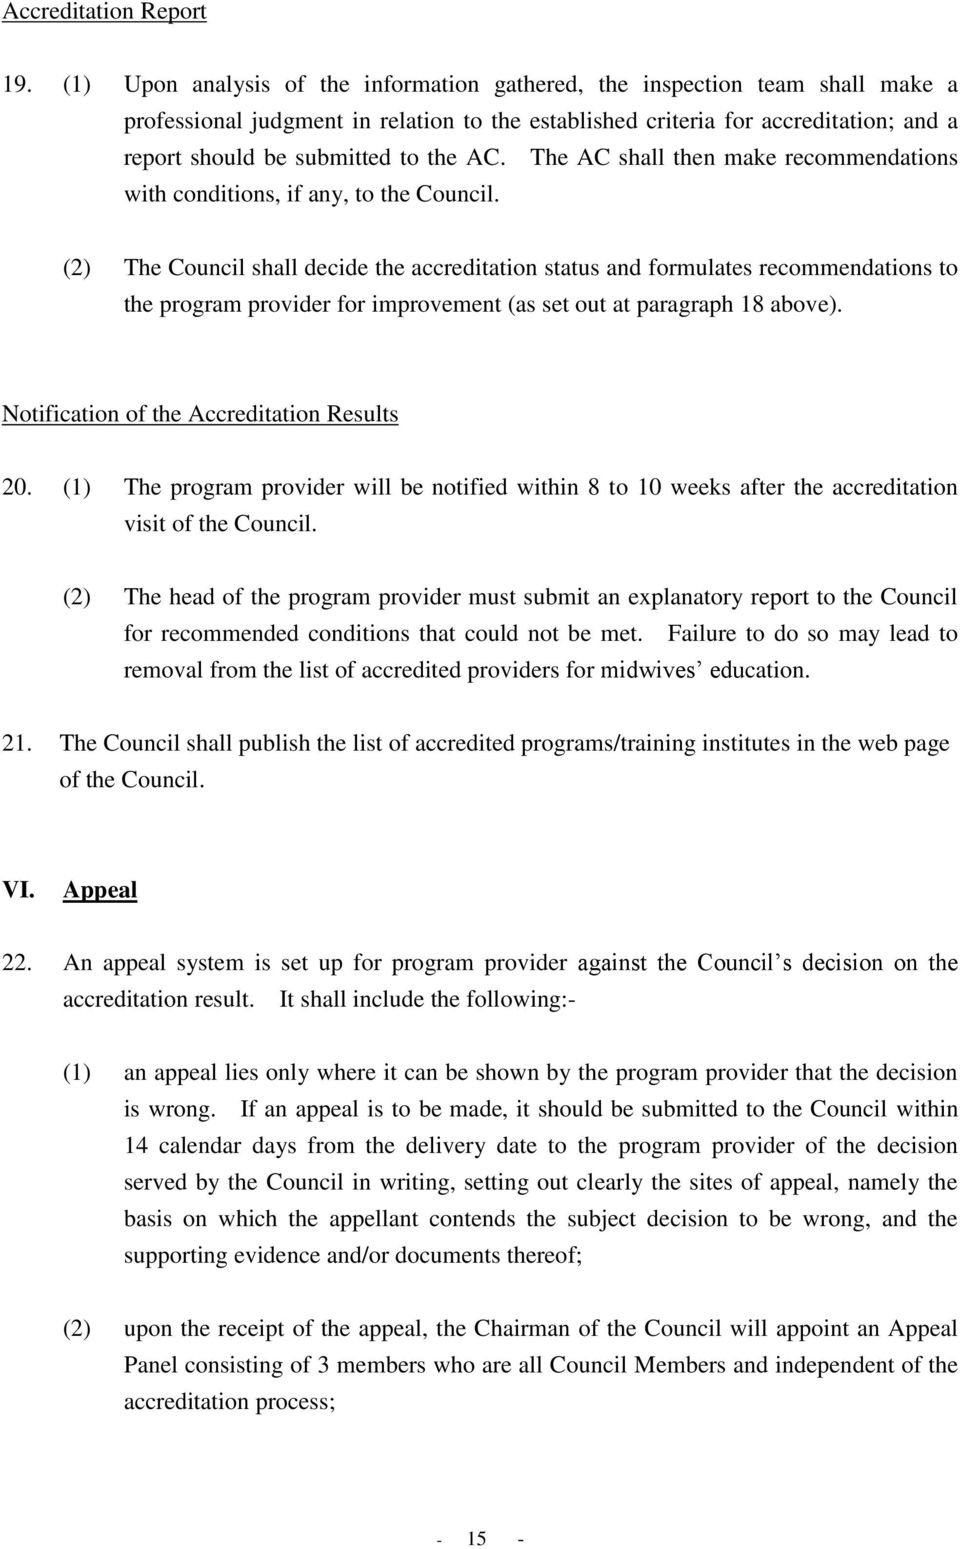 the AC. The AC shall then make recommendations with conditions, if any, to the Council.